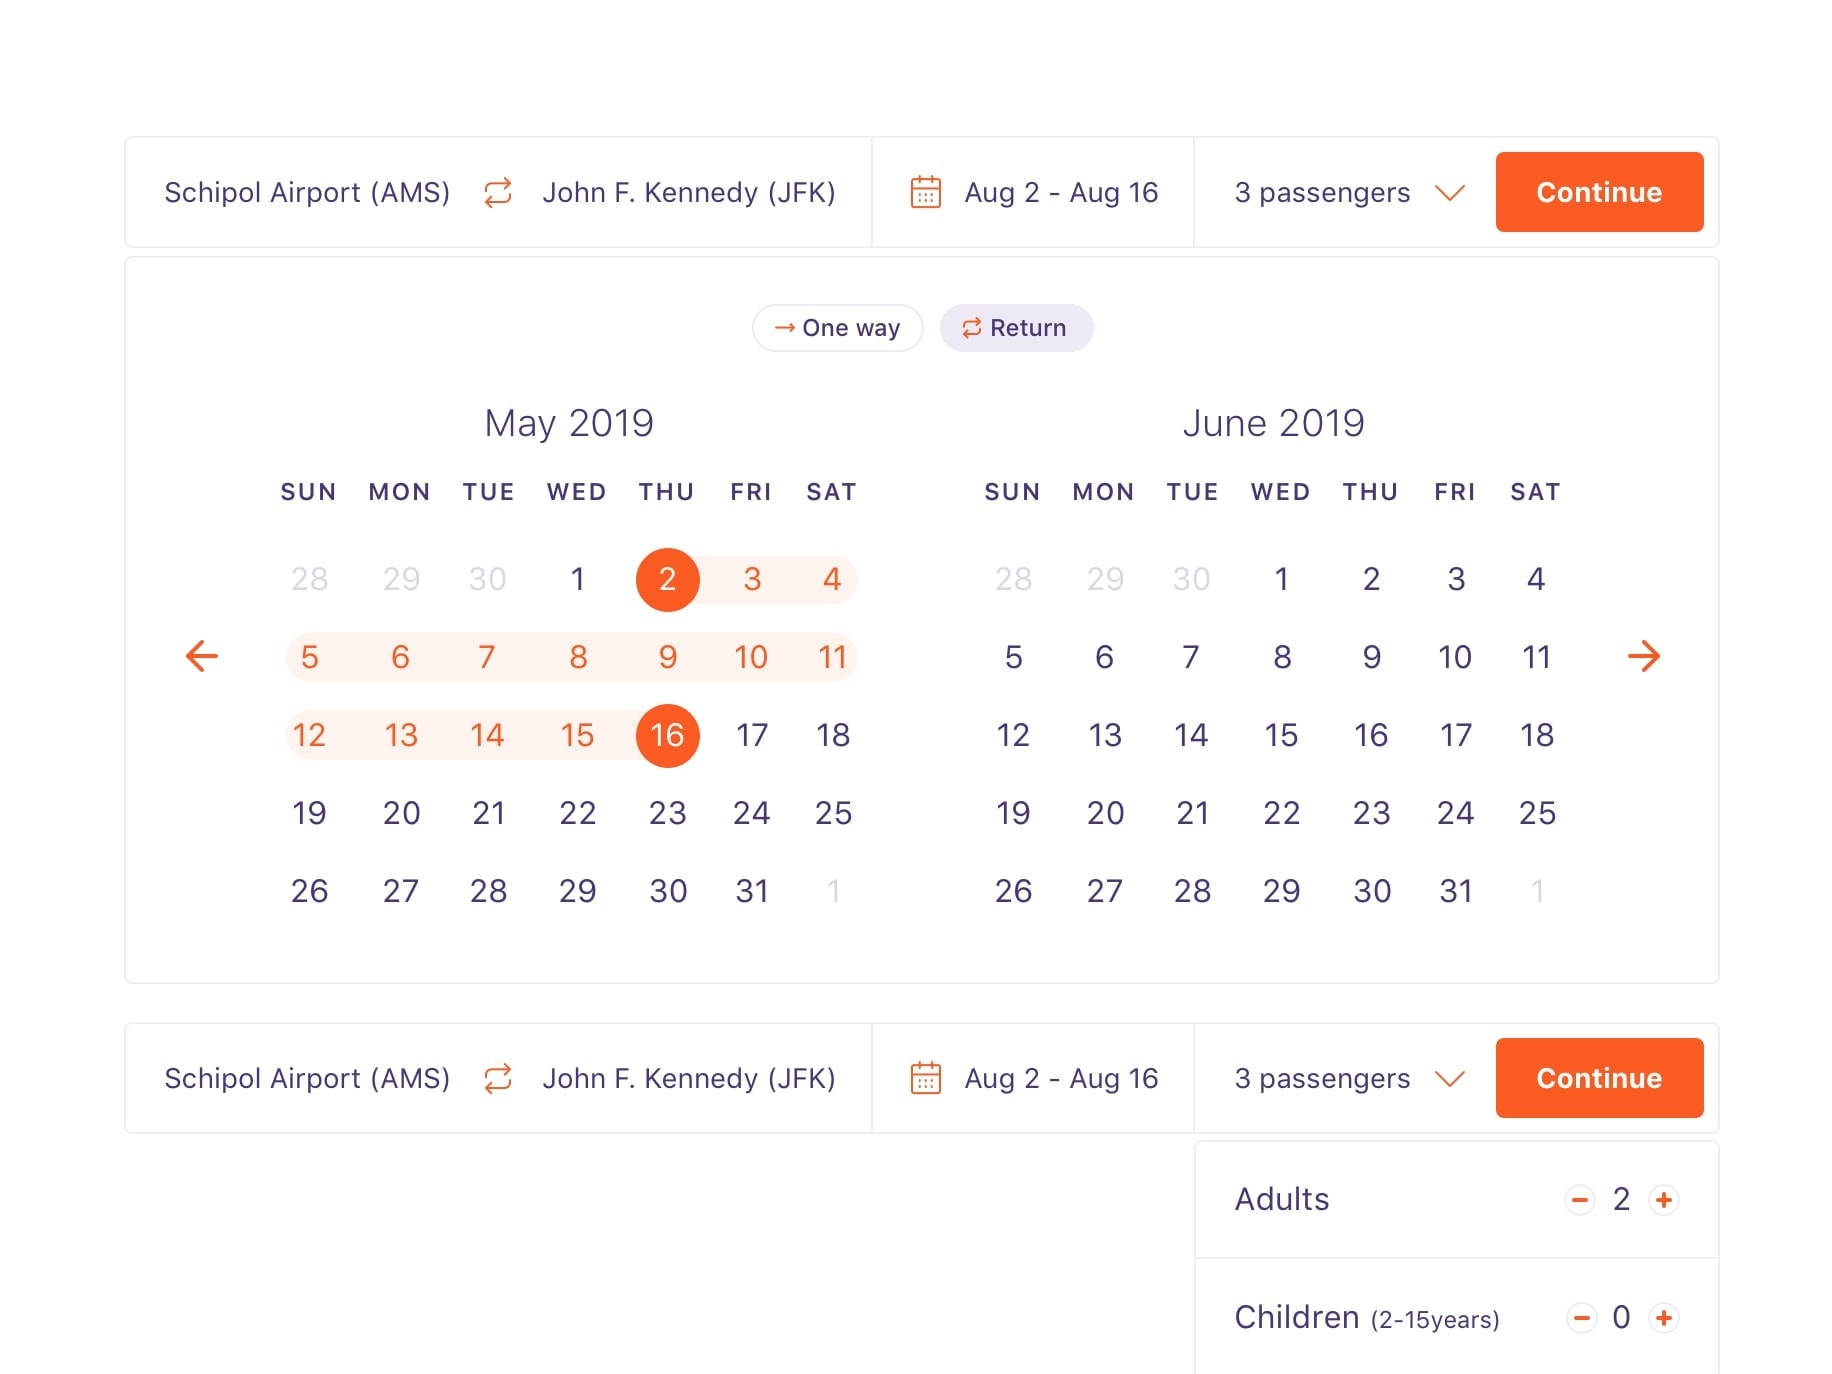 Airline Datepicker on Desktop